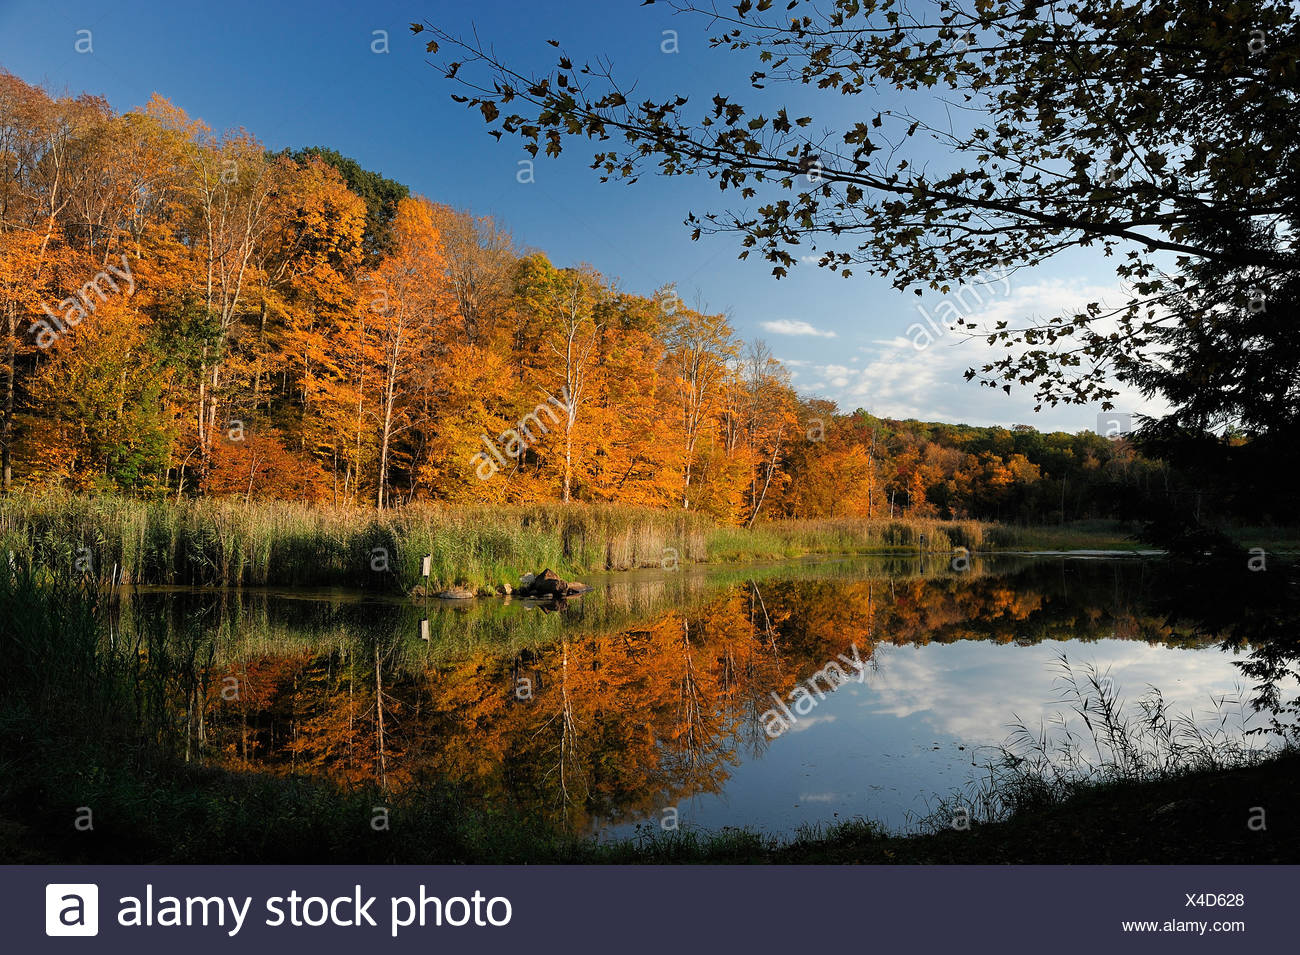 Pond Litchfield Connecticut USA America United States of America fall forest water nature - Stock Image